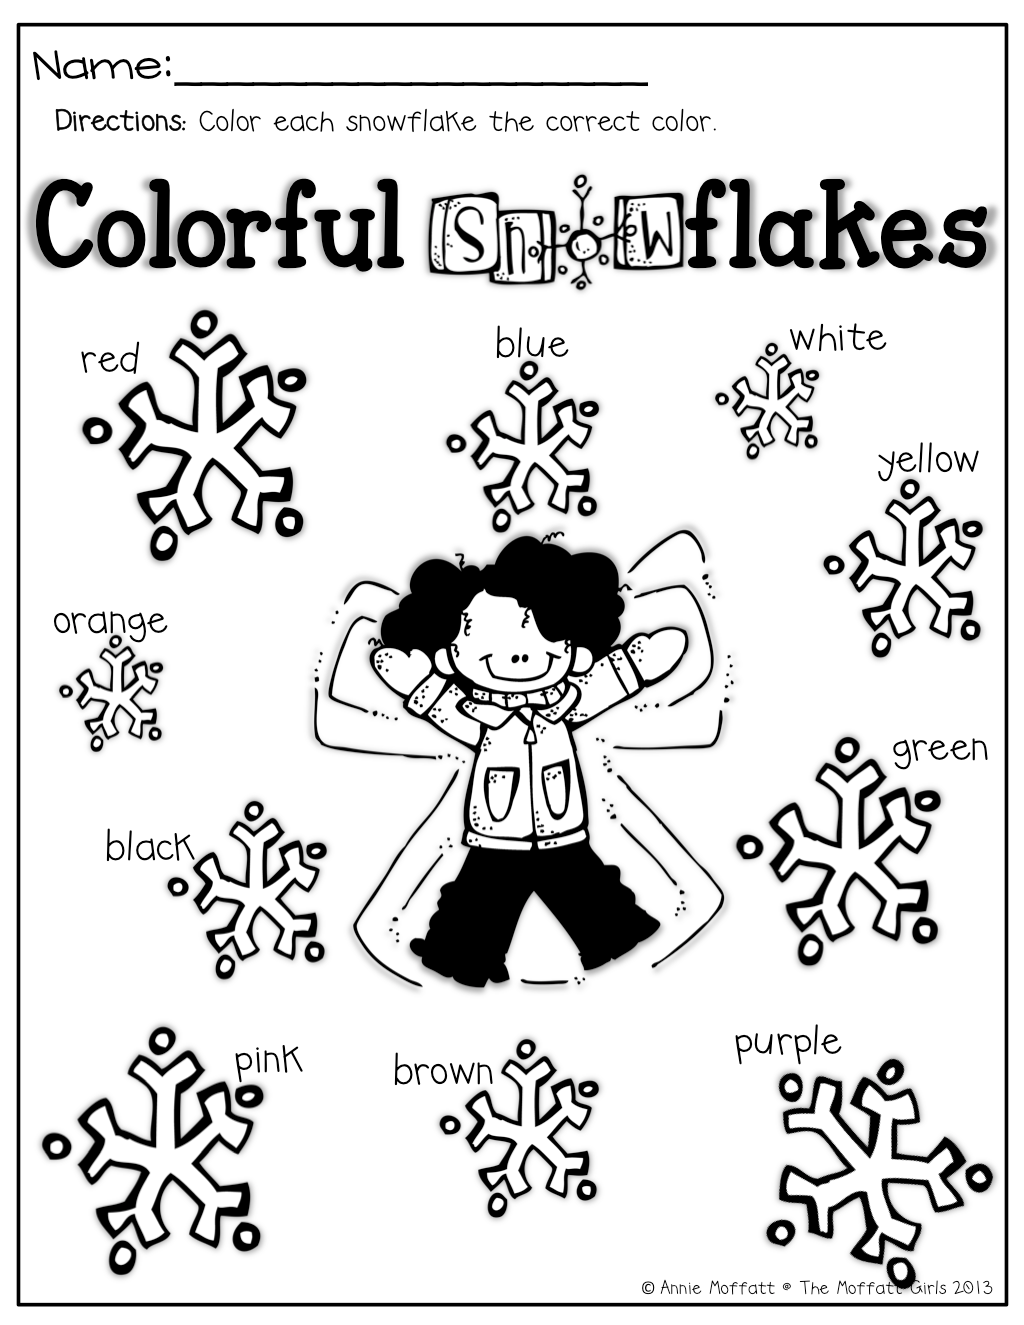 Working With Color Words Color The Snowflake The Correct Colors